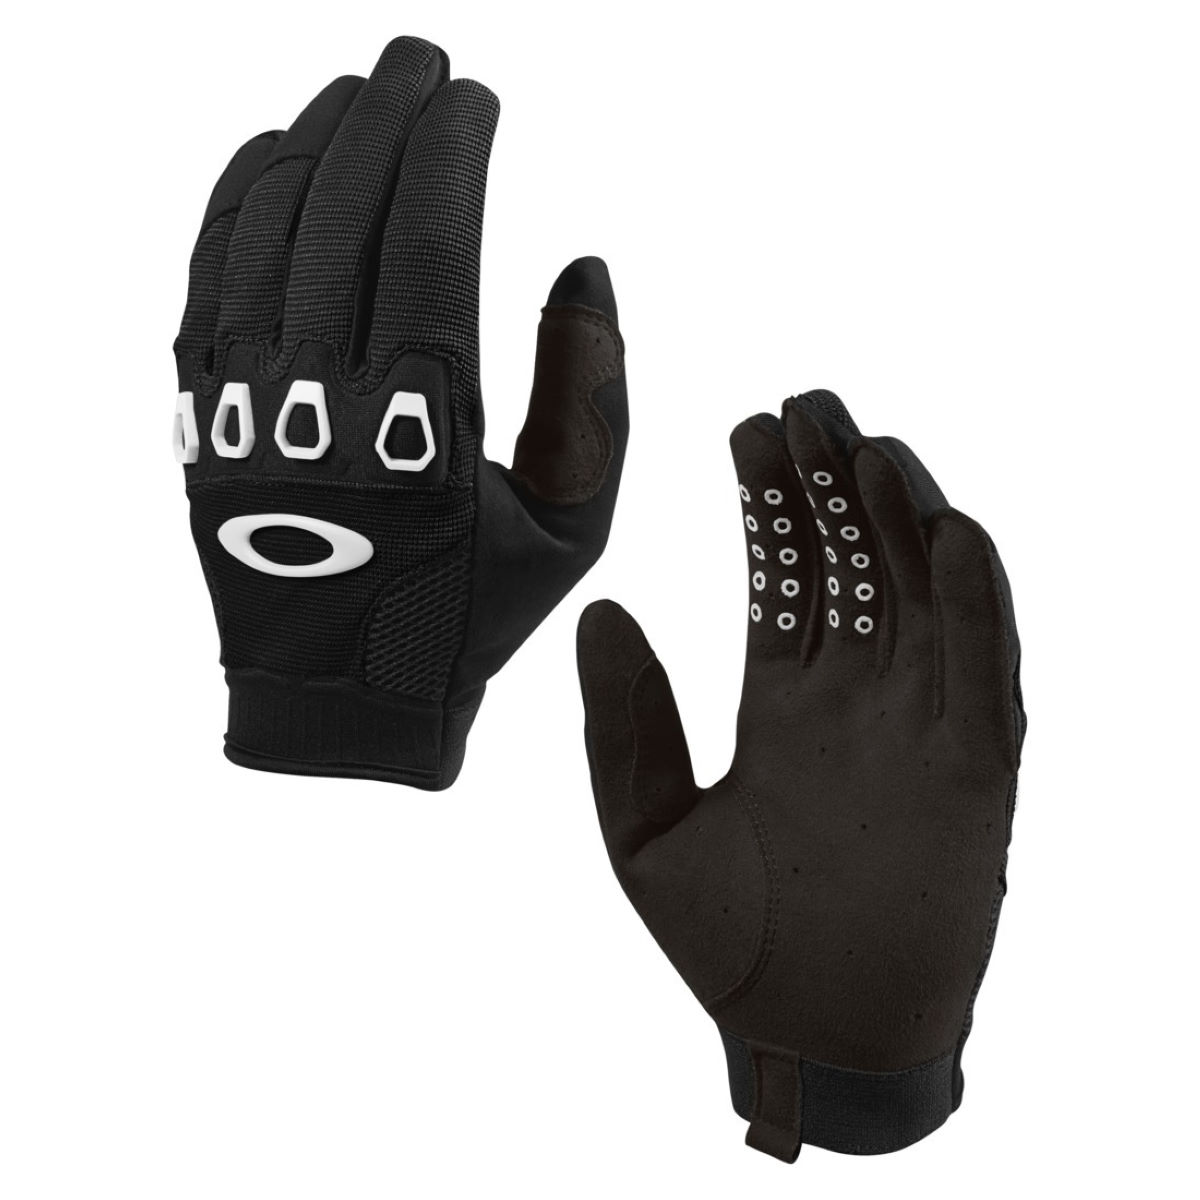 Oakley Automatic 2.0 Long Finger Gloves - Extra Large Black